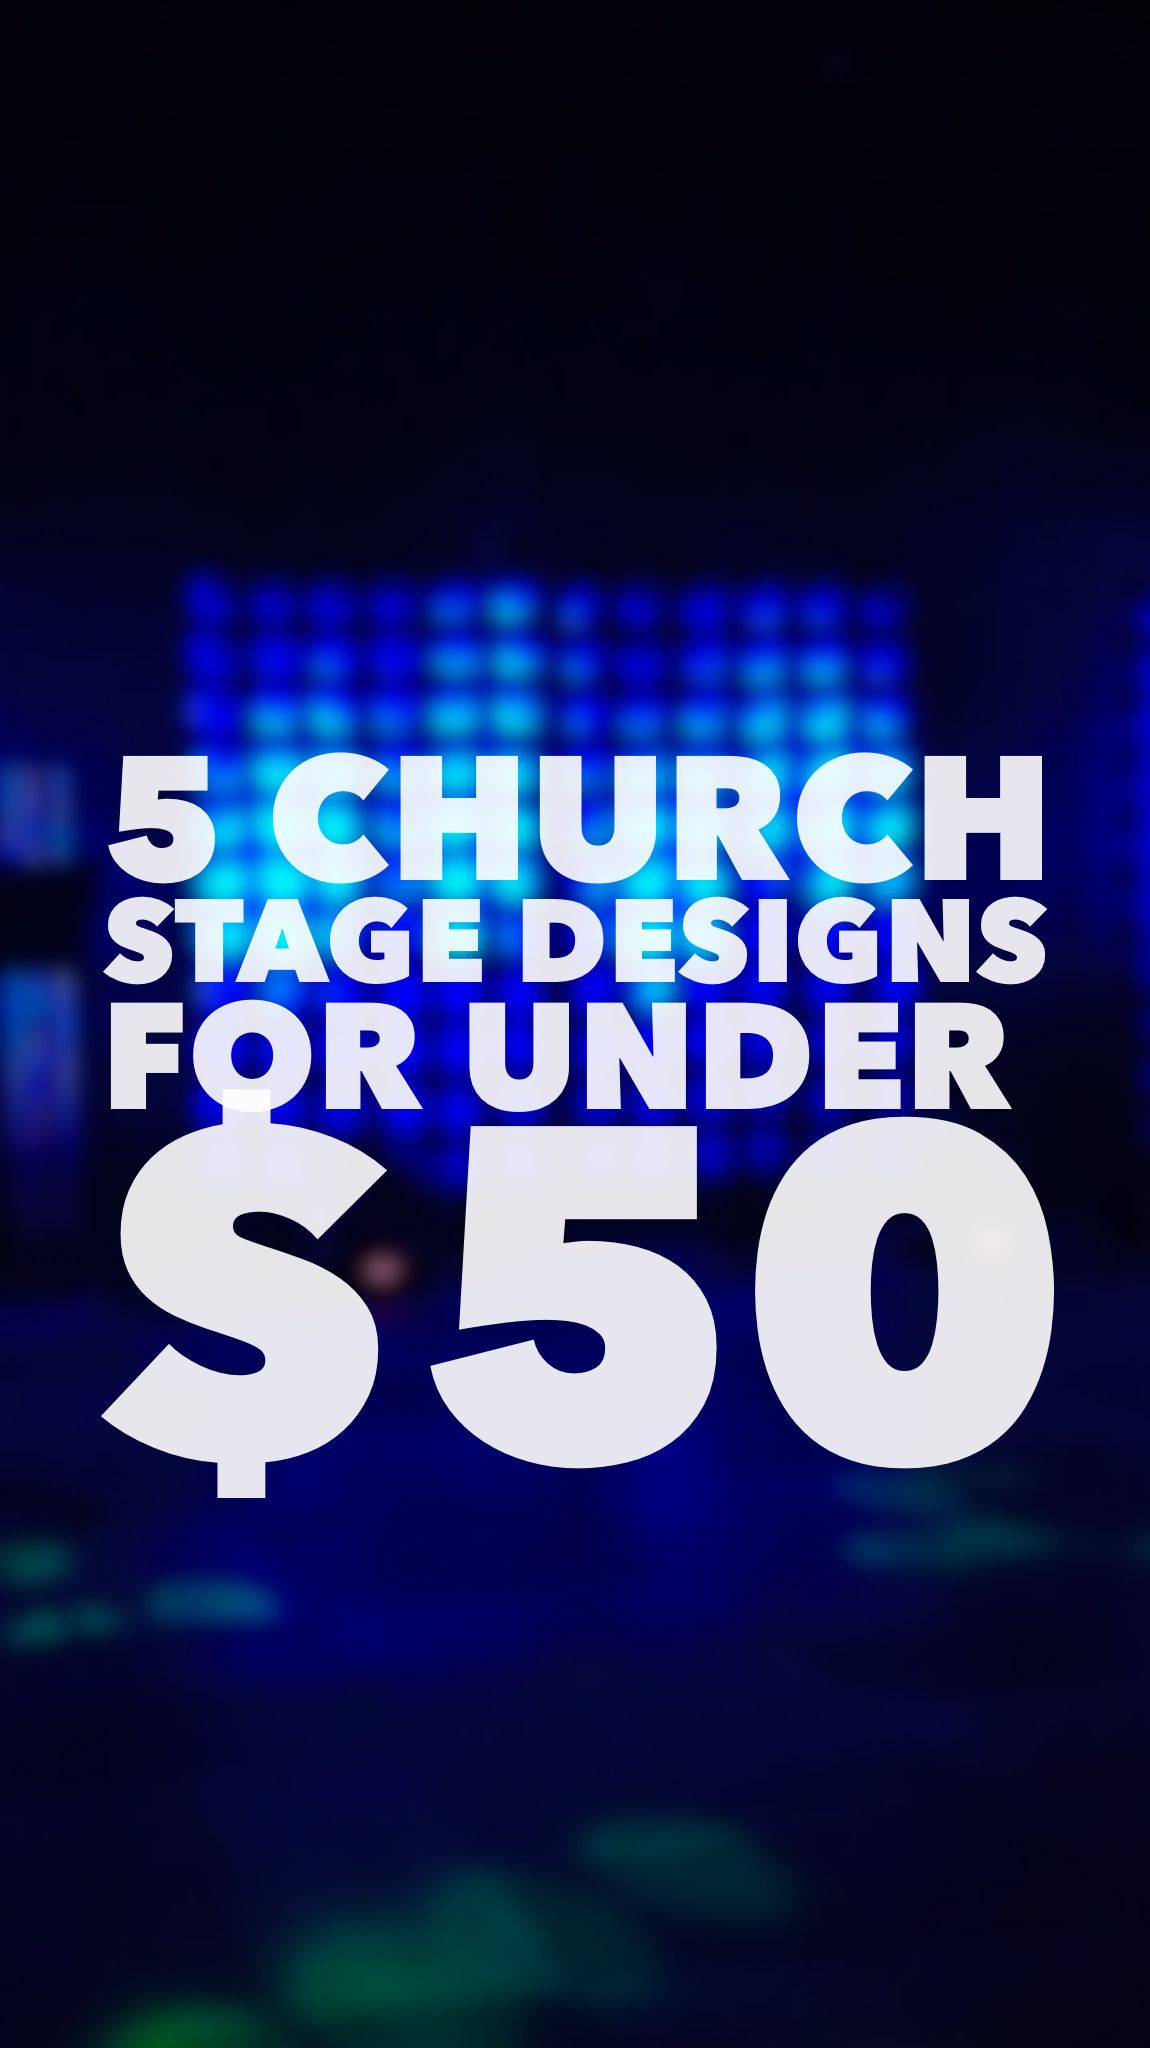 easy church stage designs for under 50 ministry church stage design stage design kids. Black Bedroom Furniture Sets. Home Design Ideas